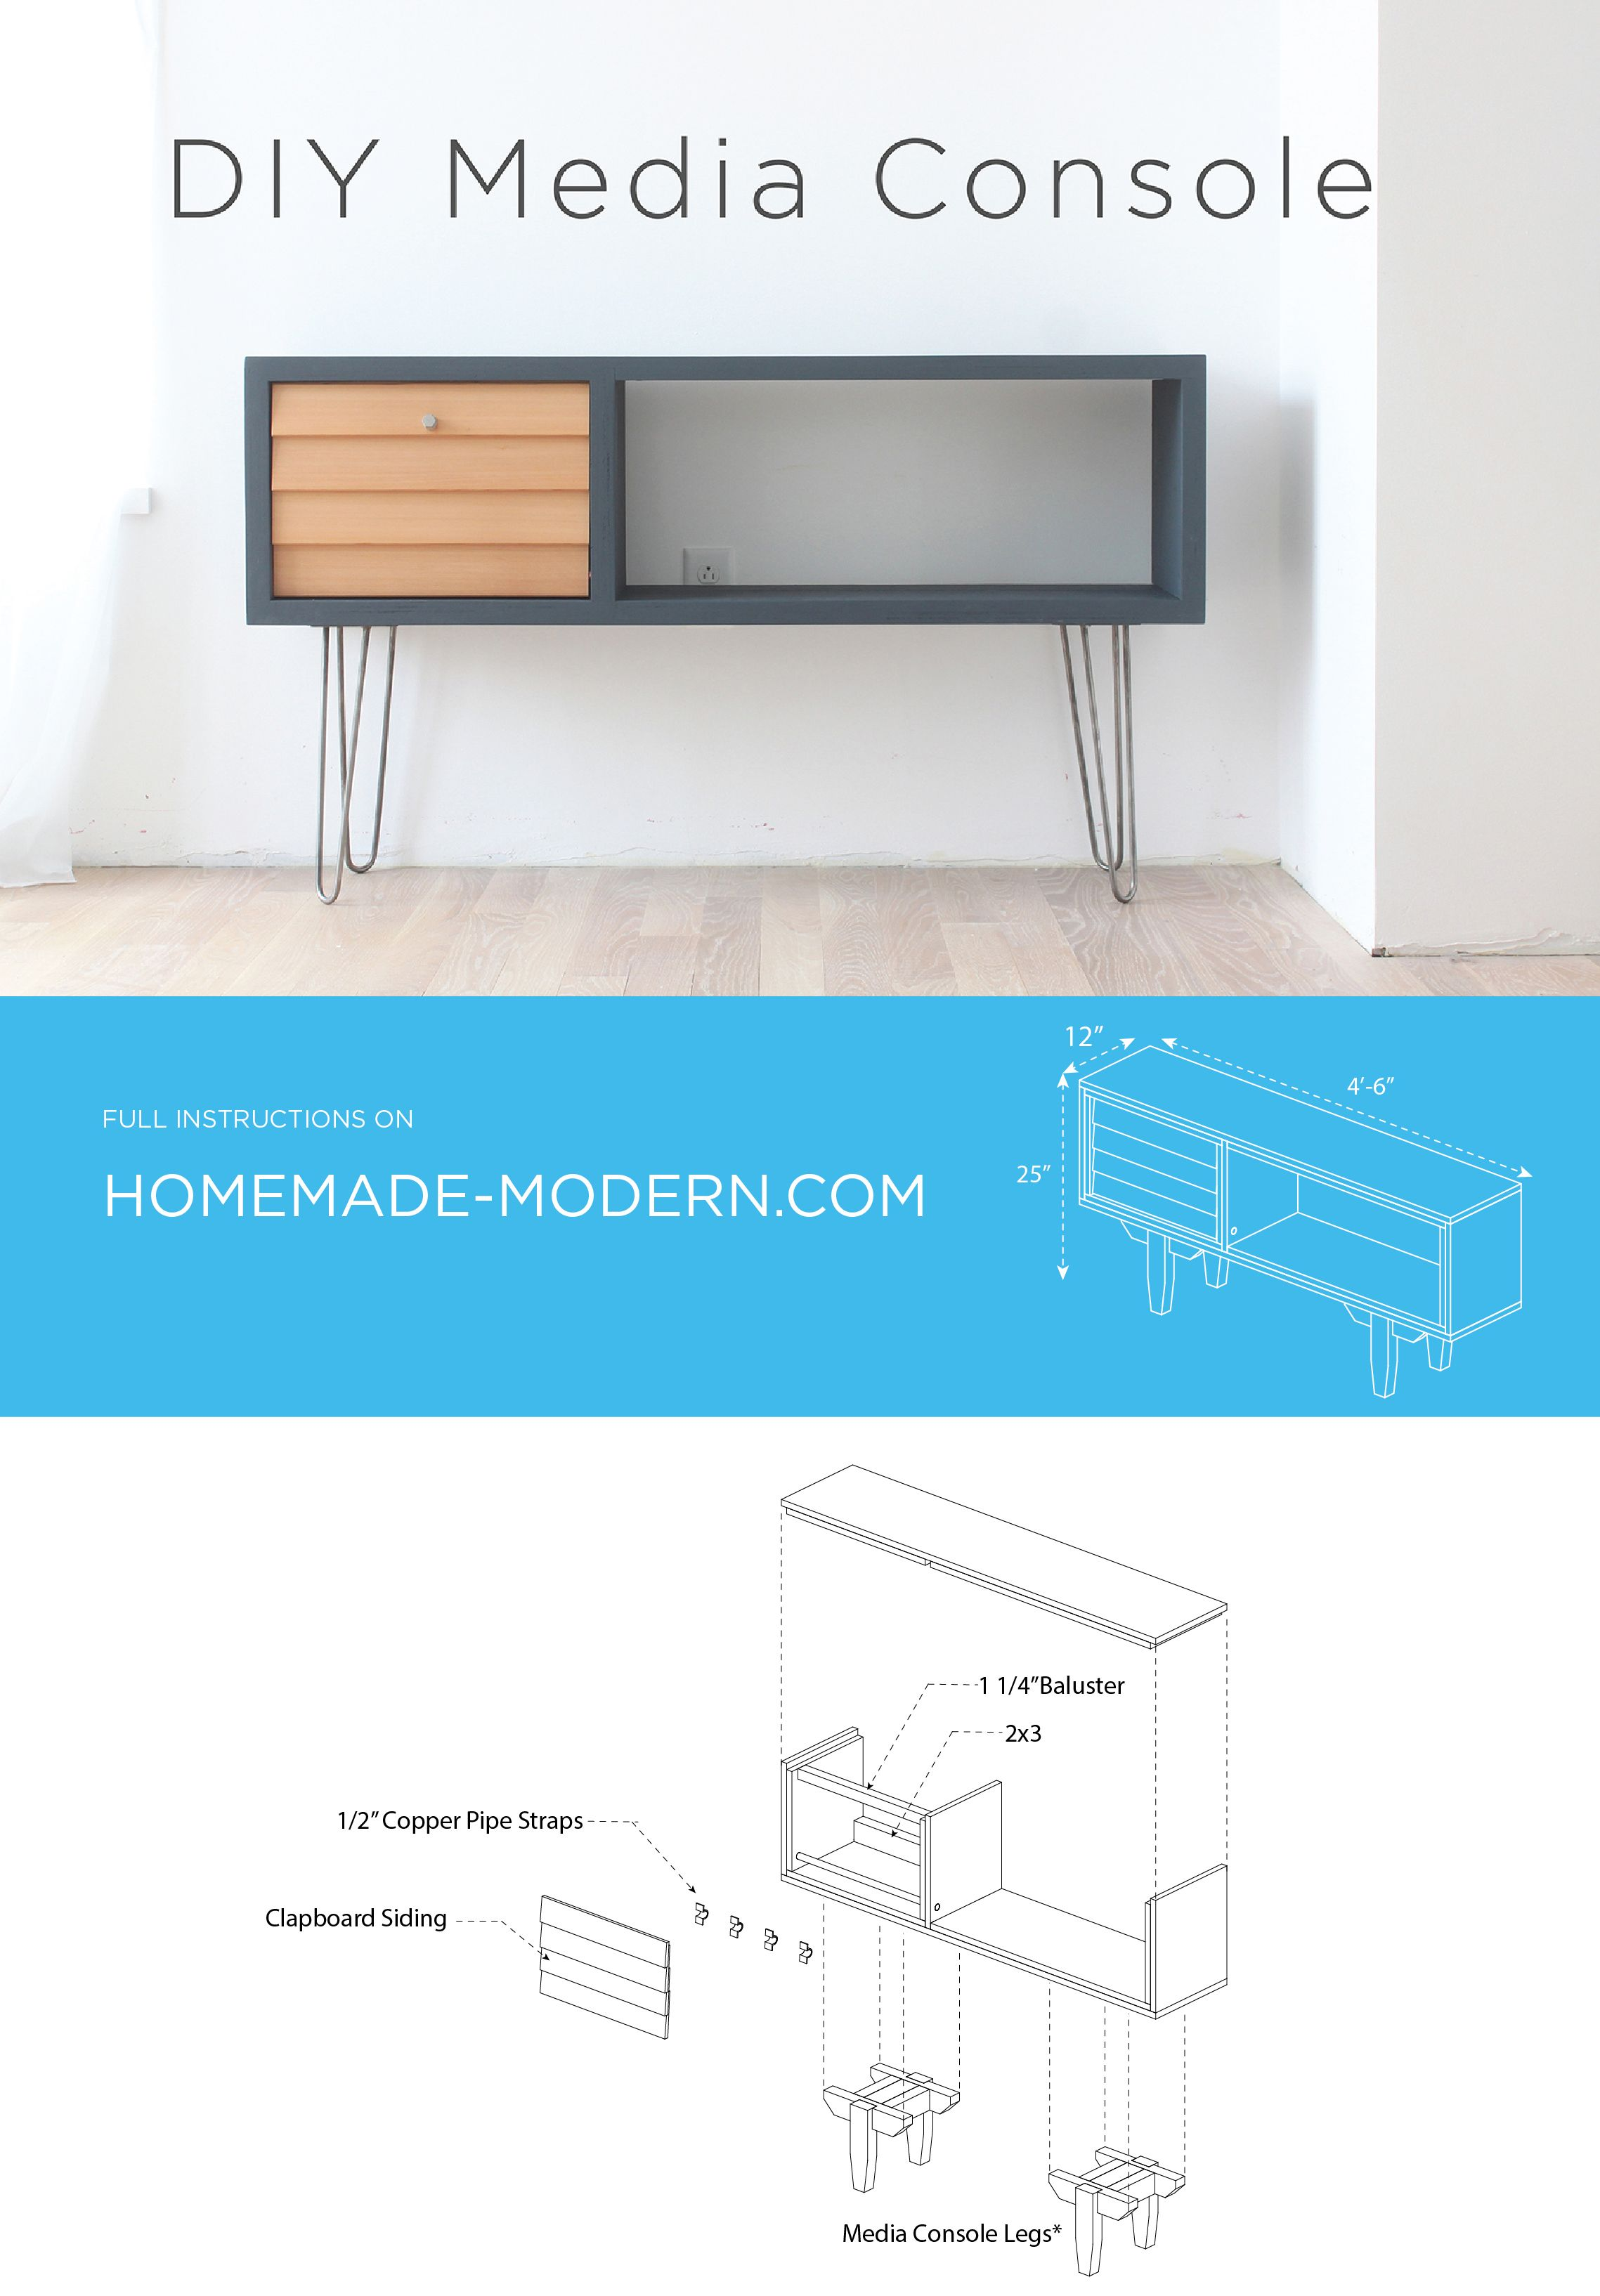 A Diy Media Console That Has A Mid Century Modern Style Another Diy Project By Ben Uyeda Homemade Modern Mid Century Modern Furniture Mid Century Modern Decor